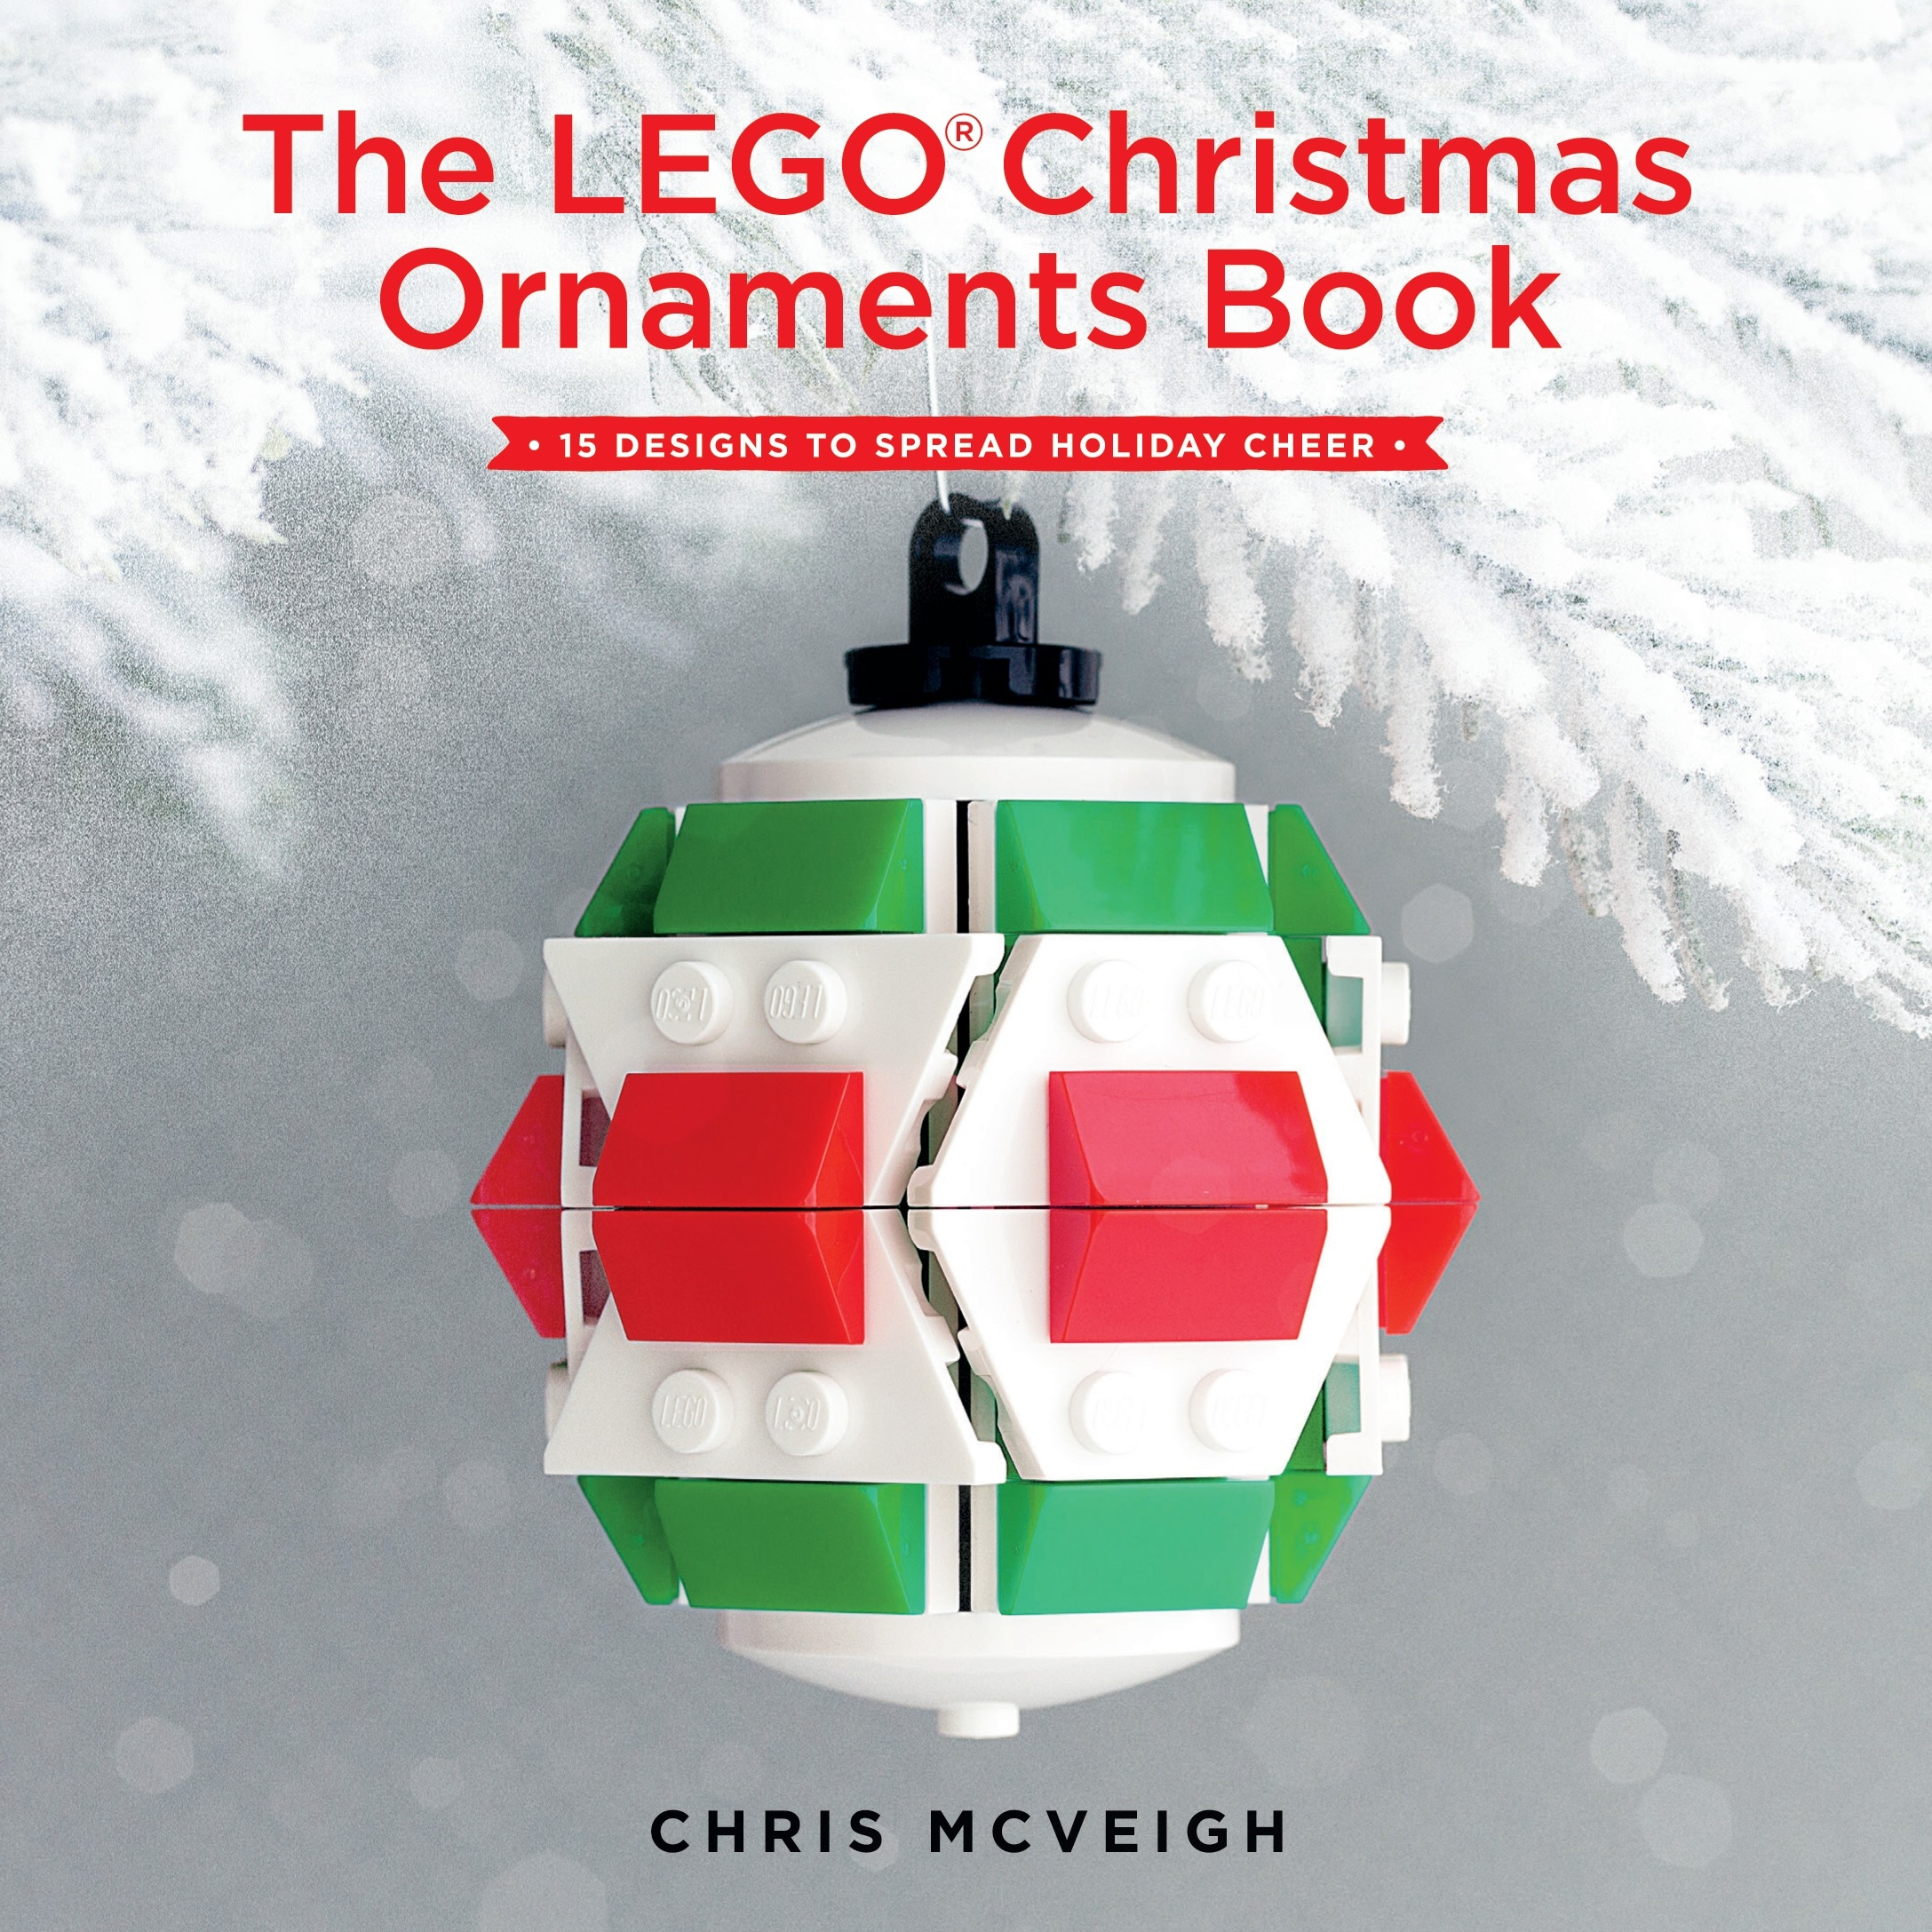 The LEGO Christmas Ornaments Book by Chris McVeigh, ISBN: 9781593277666